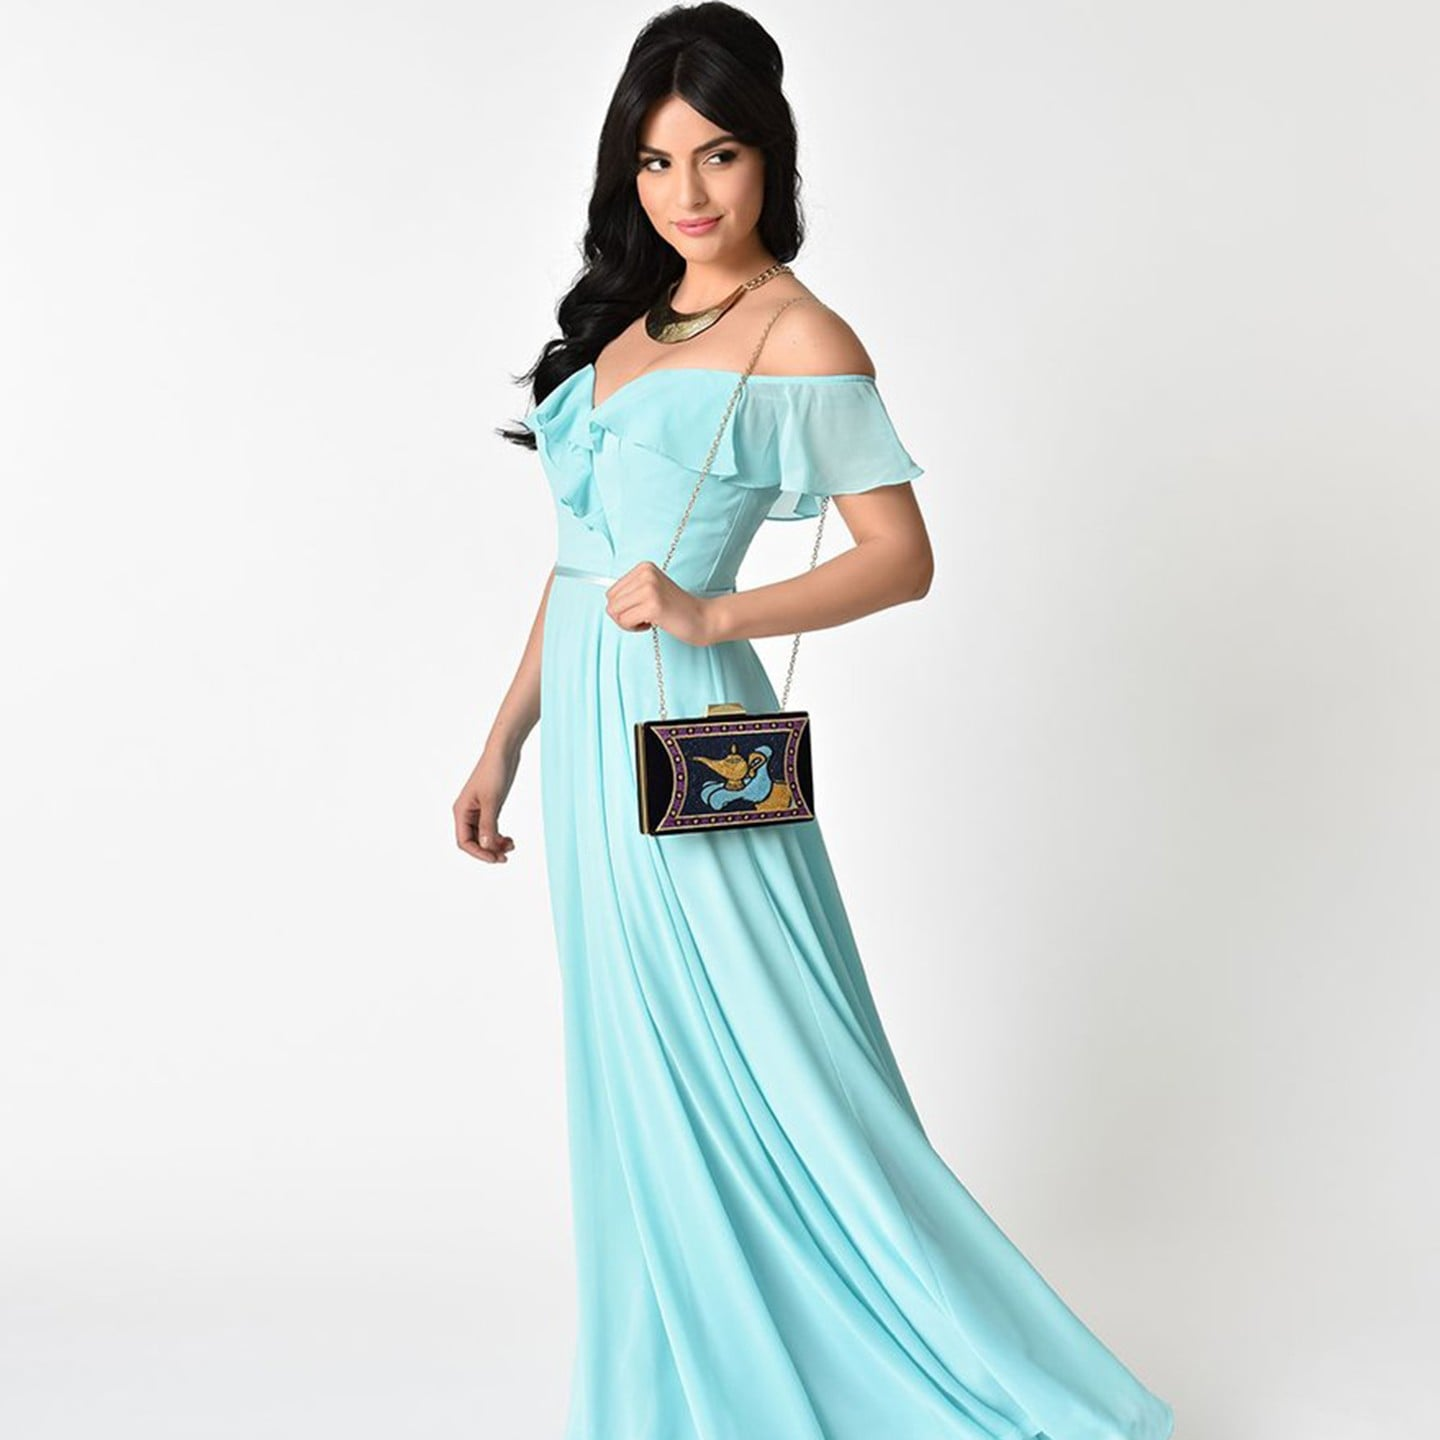 Perry Blue Off The Shoulder Two Piece Satin Prom Gown | Unique ...